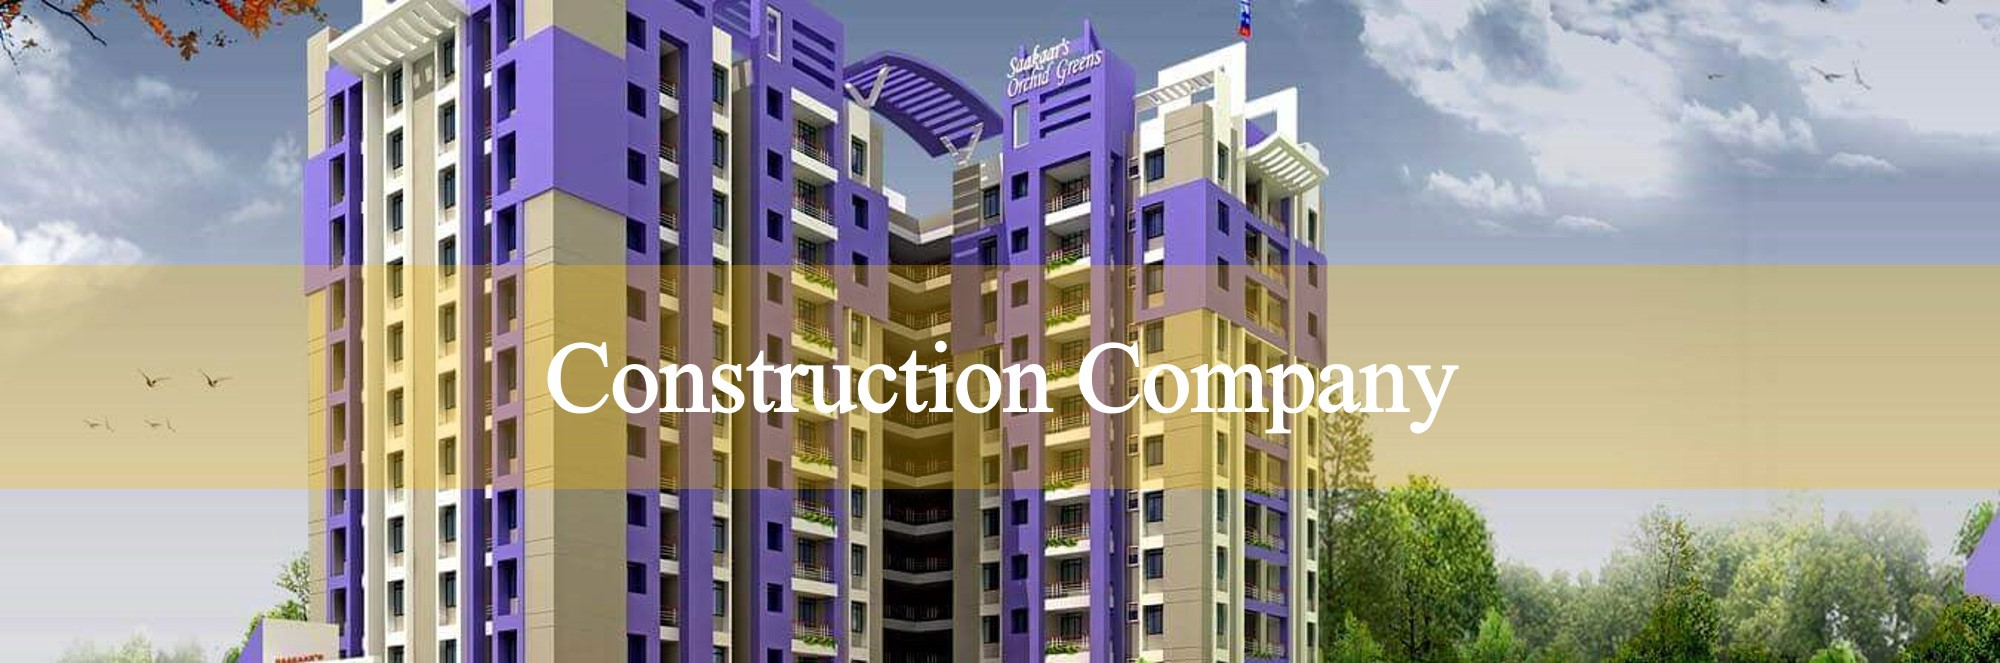 Rules & Regulations for Construction Business Owners